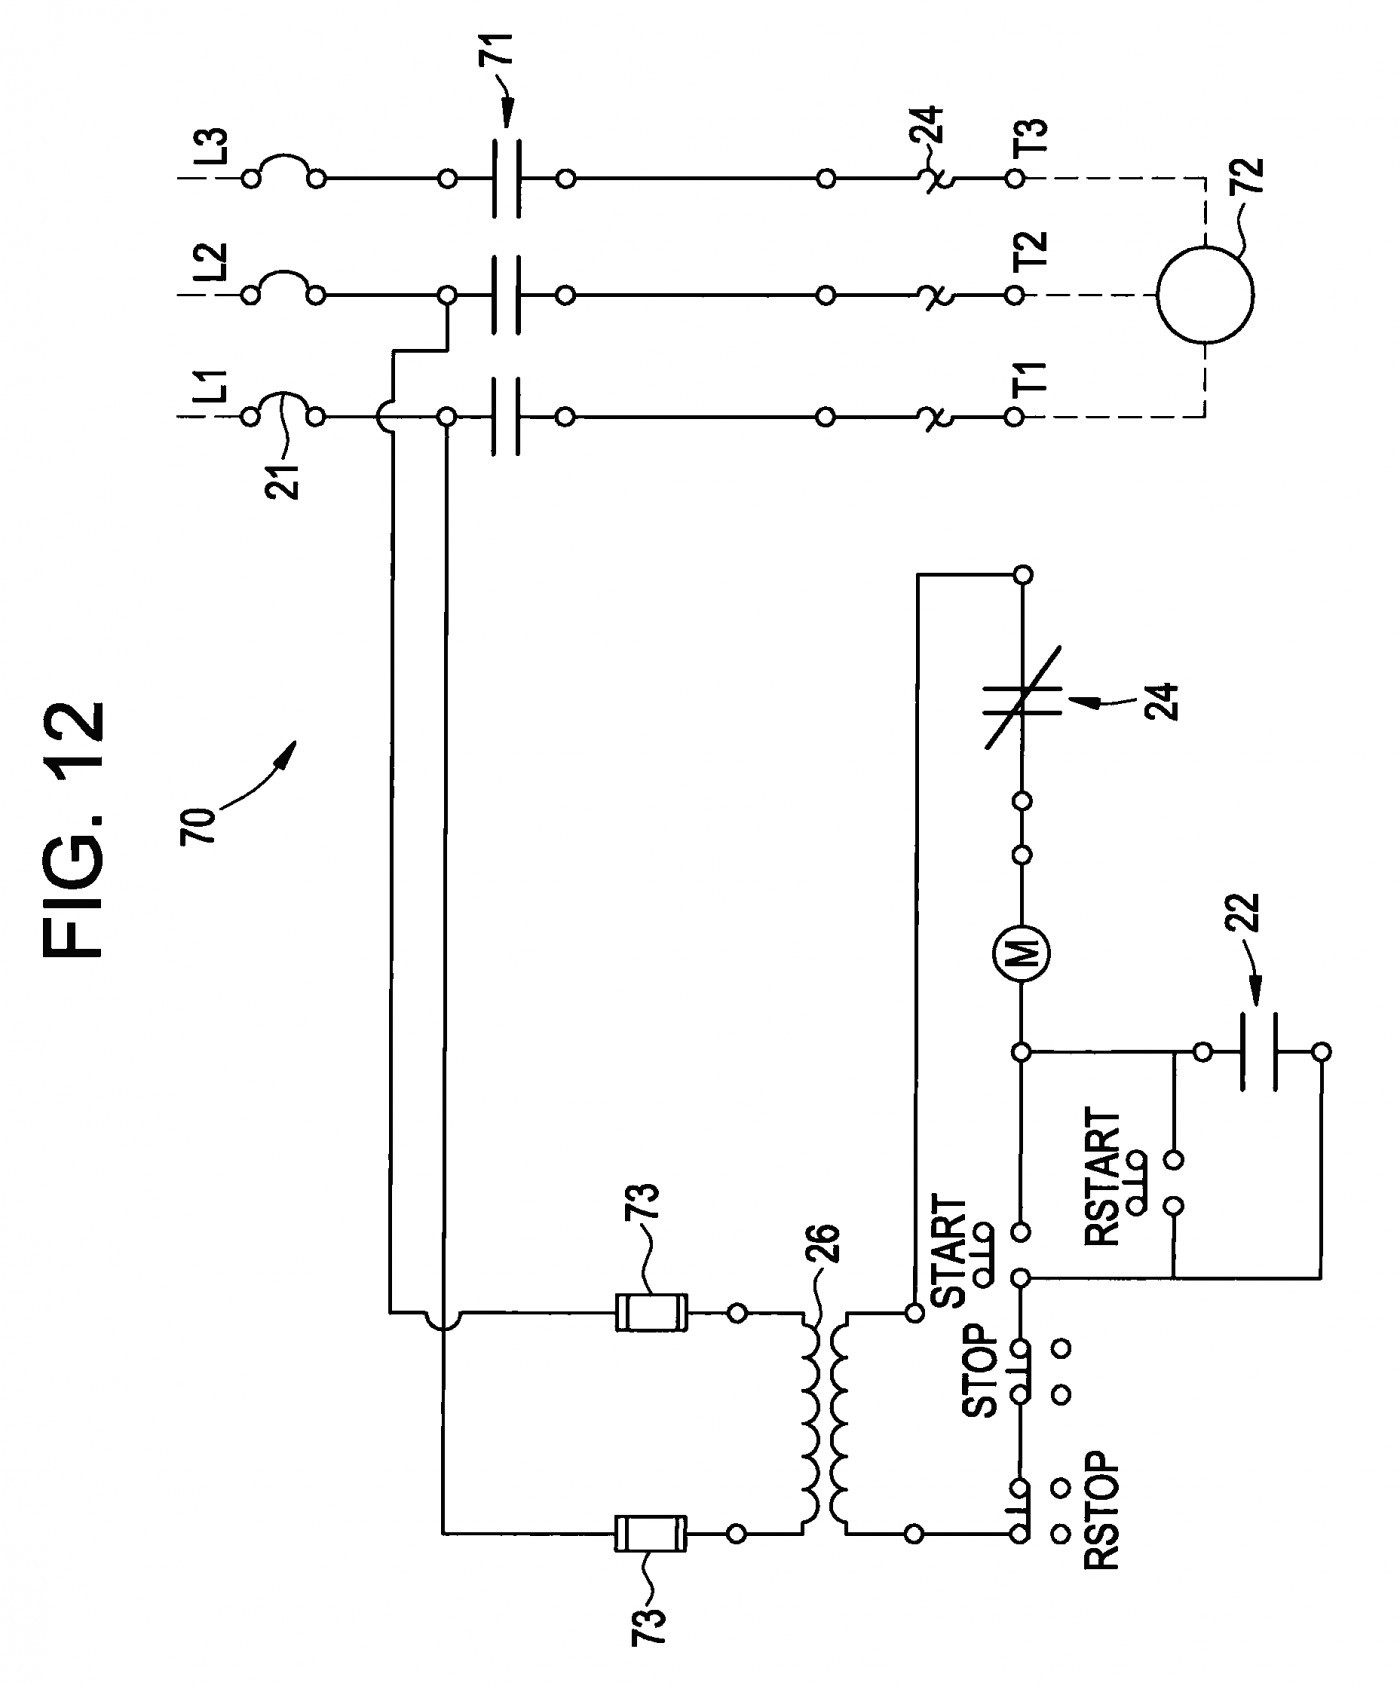 Pressure Switch Wiring Diagram Air Compressor Beautiful Air Pressor Pressure Switch Wiring Diagram Ideas Of Pressure Switch Wiring Diagram Air Compressor